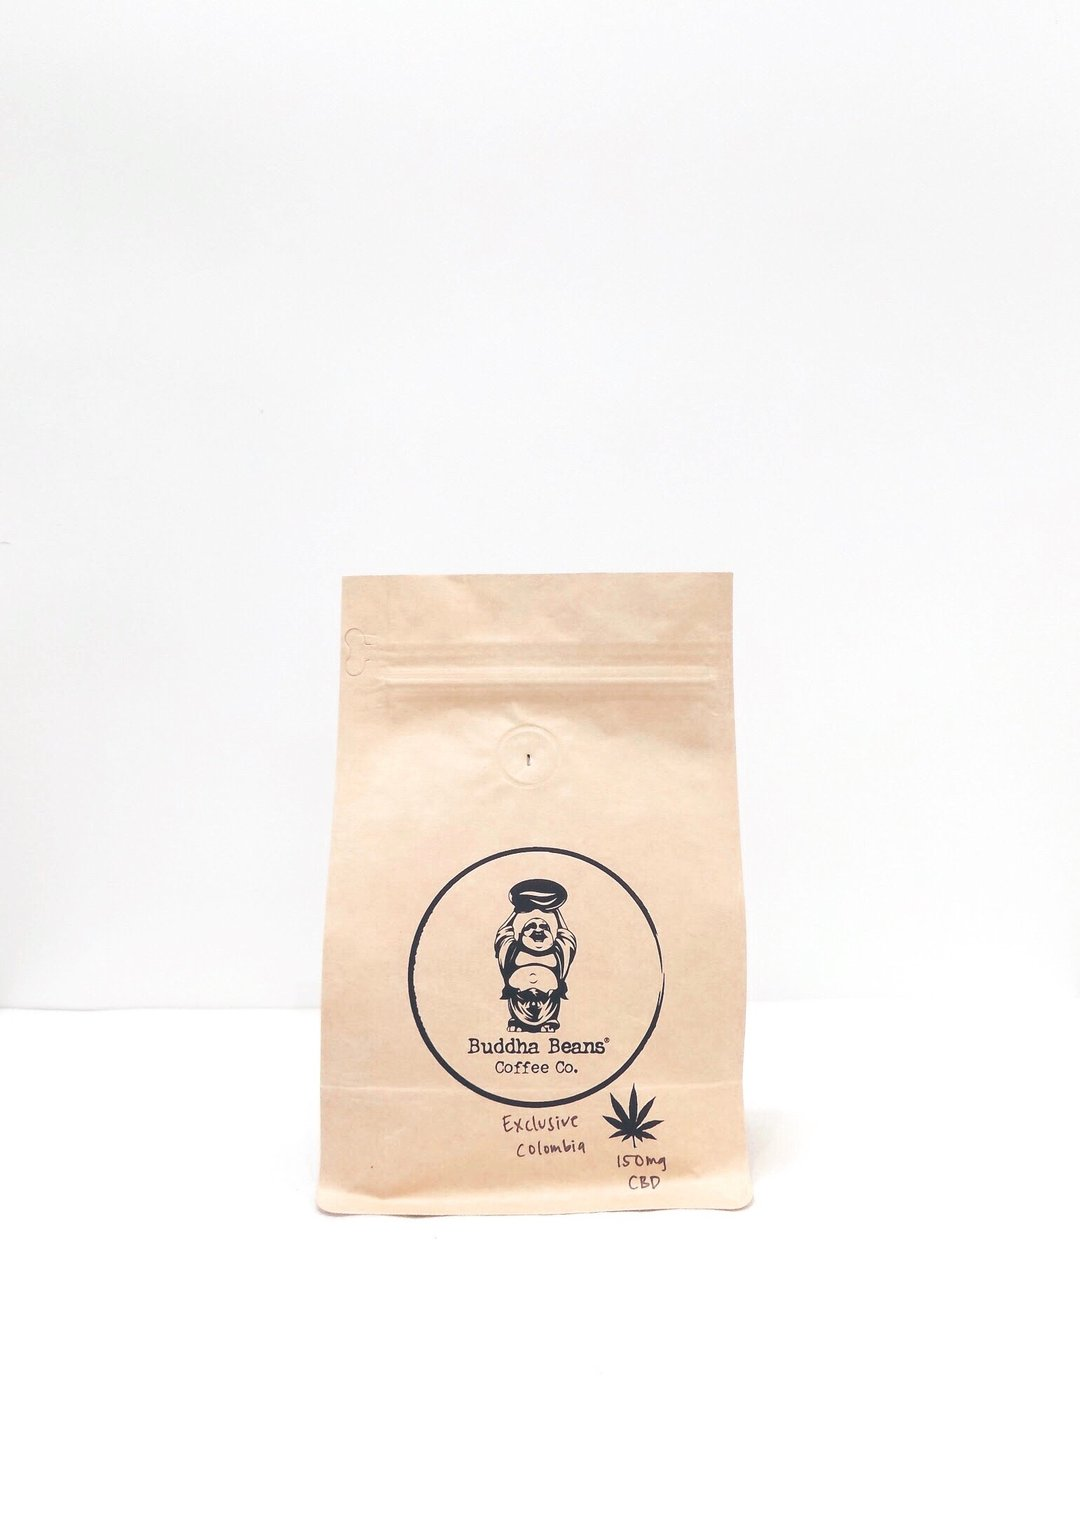 Buddha Beans CBD Coffee - Exclusive Colombia Infused Coffee Beans